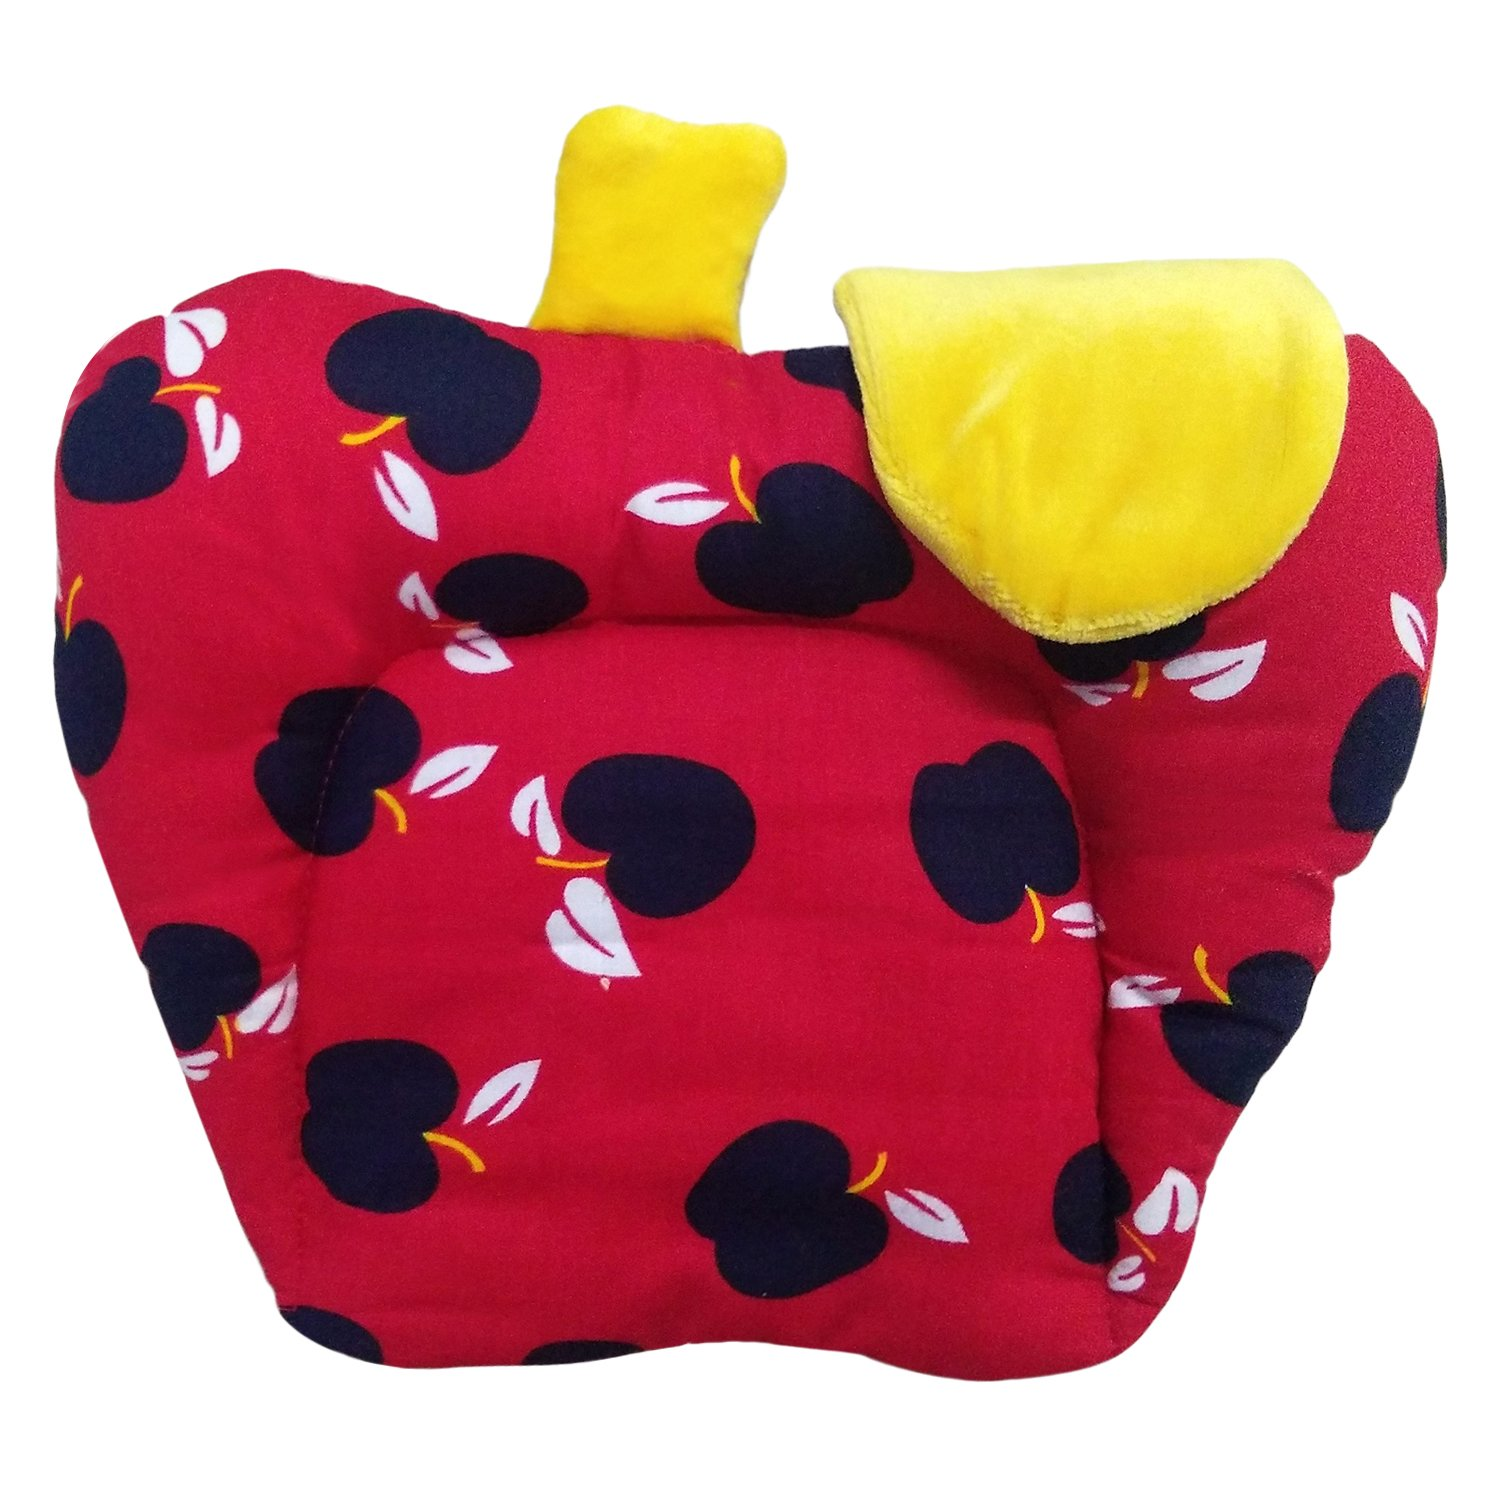 Littly Mustard Seeds Cotton Baby Pillow - Apple Shape (Red)